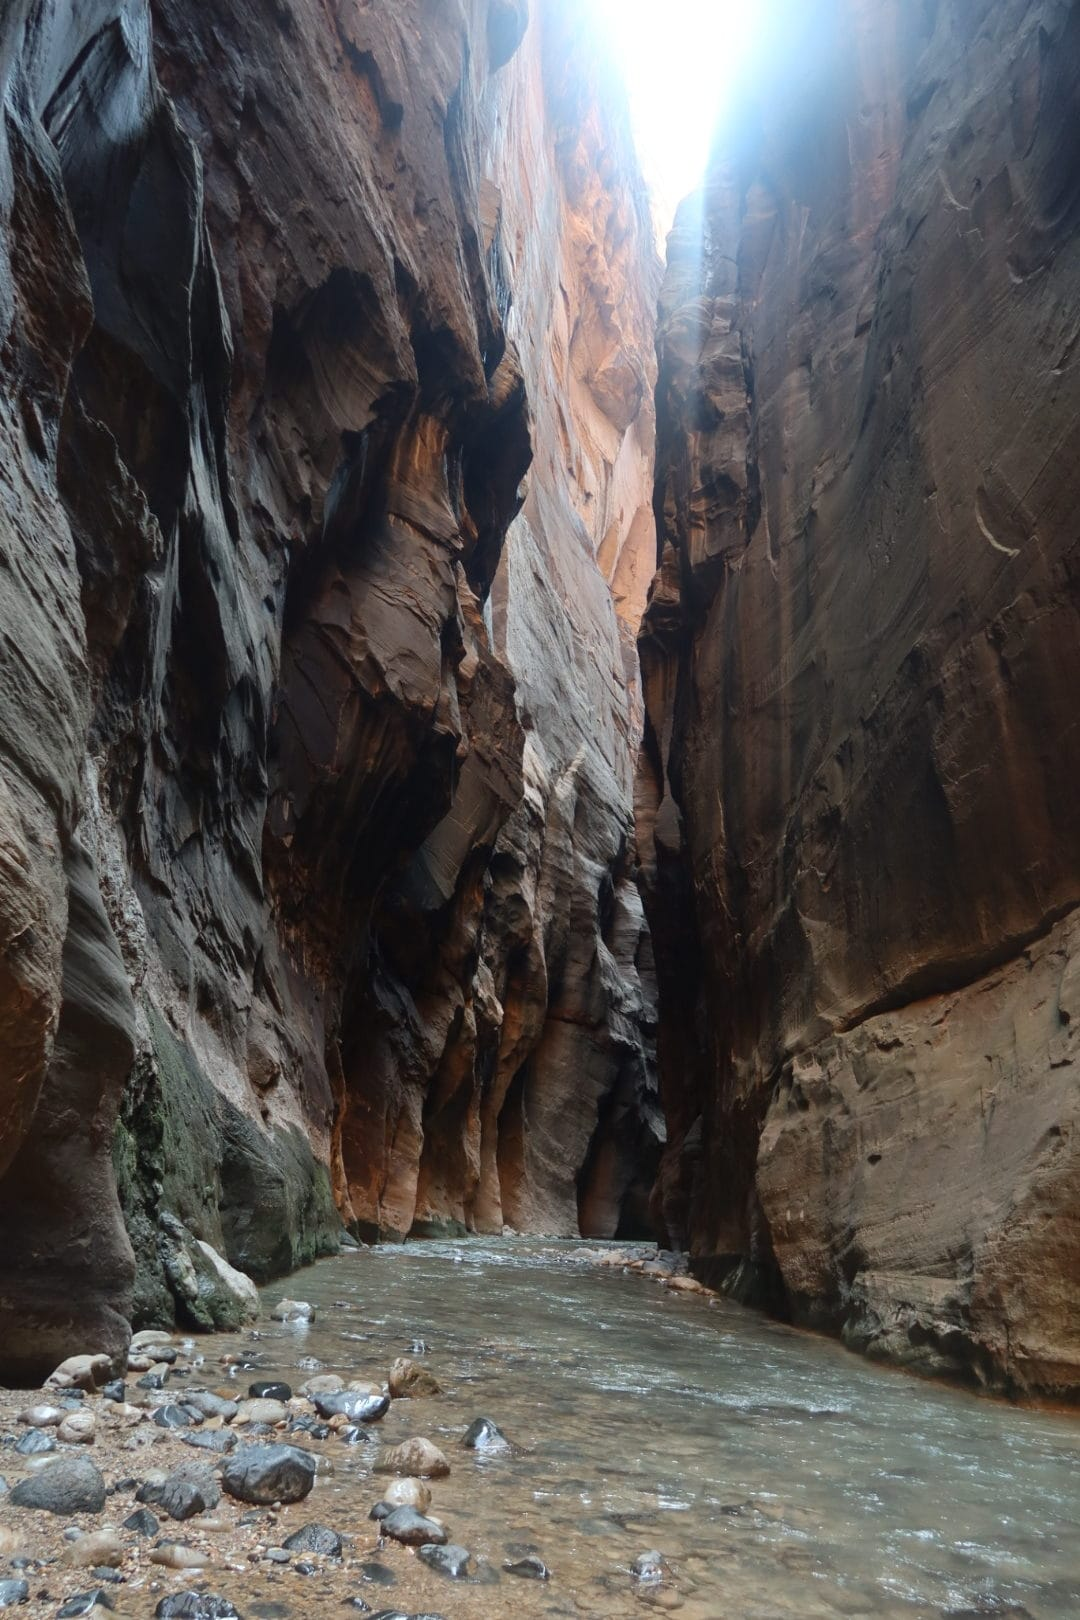 the narrows Zion national park 2020 WYOMING + UTAH ROAD TRIP ITINERARY :: 10 DAYS